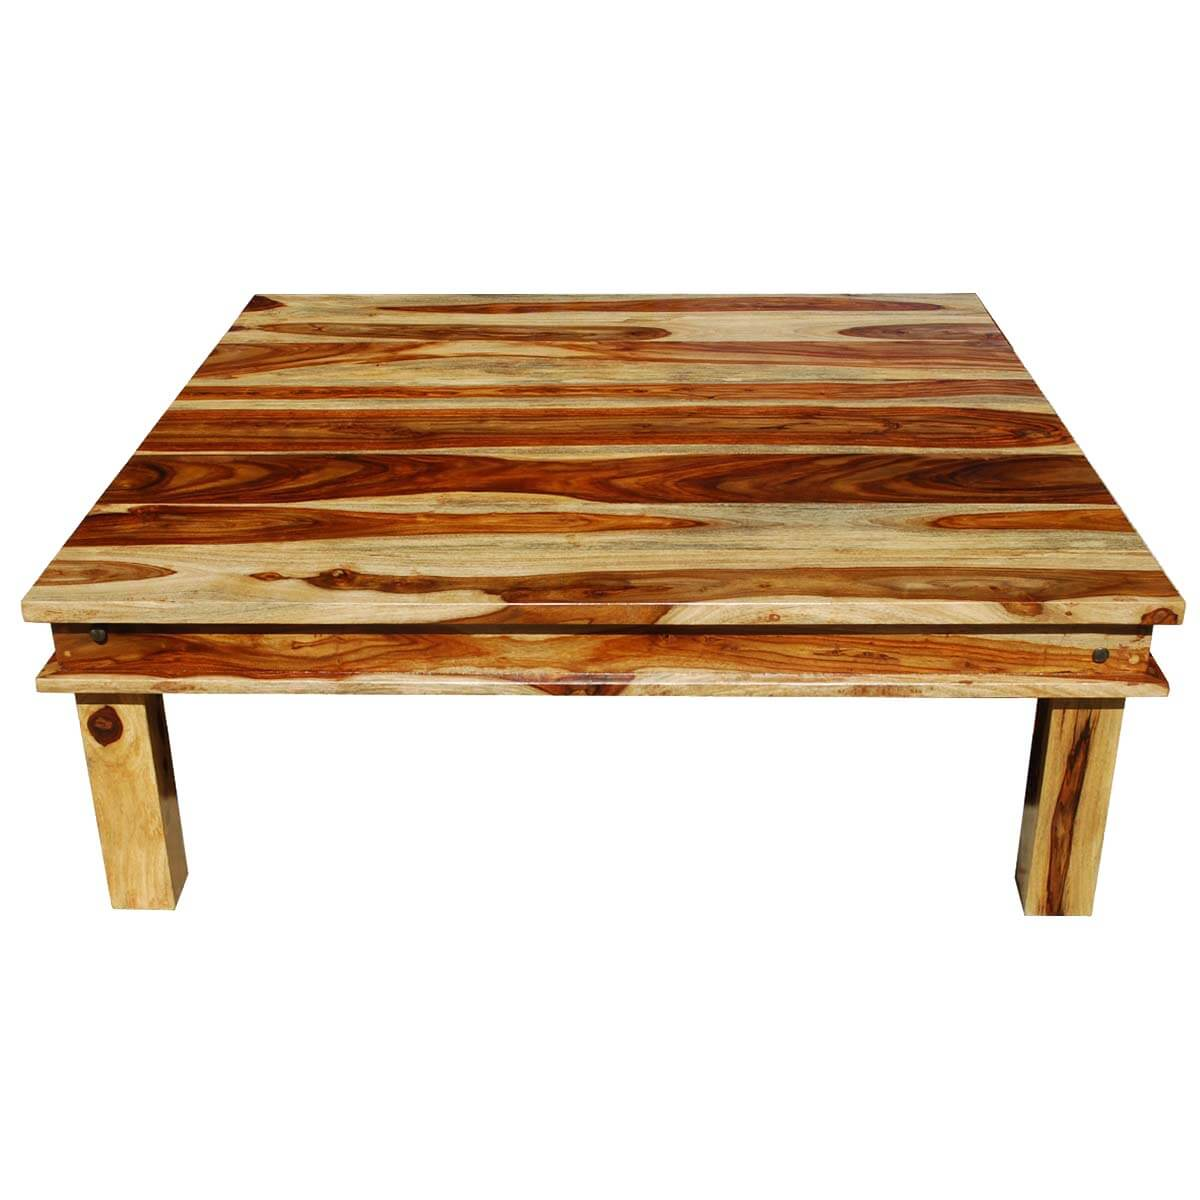 Large square wood rustic coffee table for Rustic coffee table